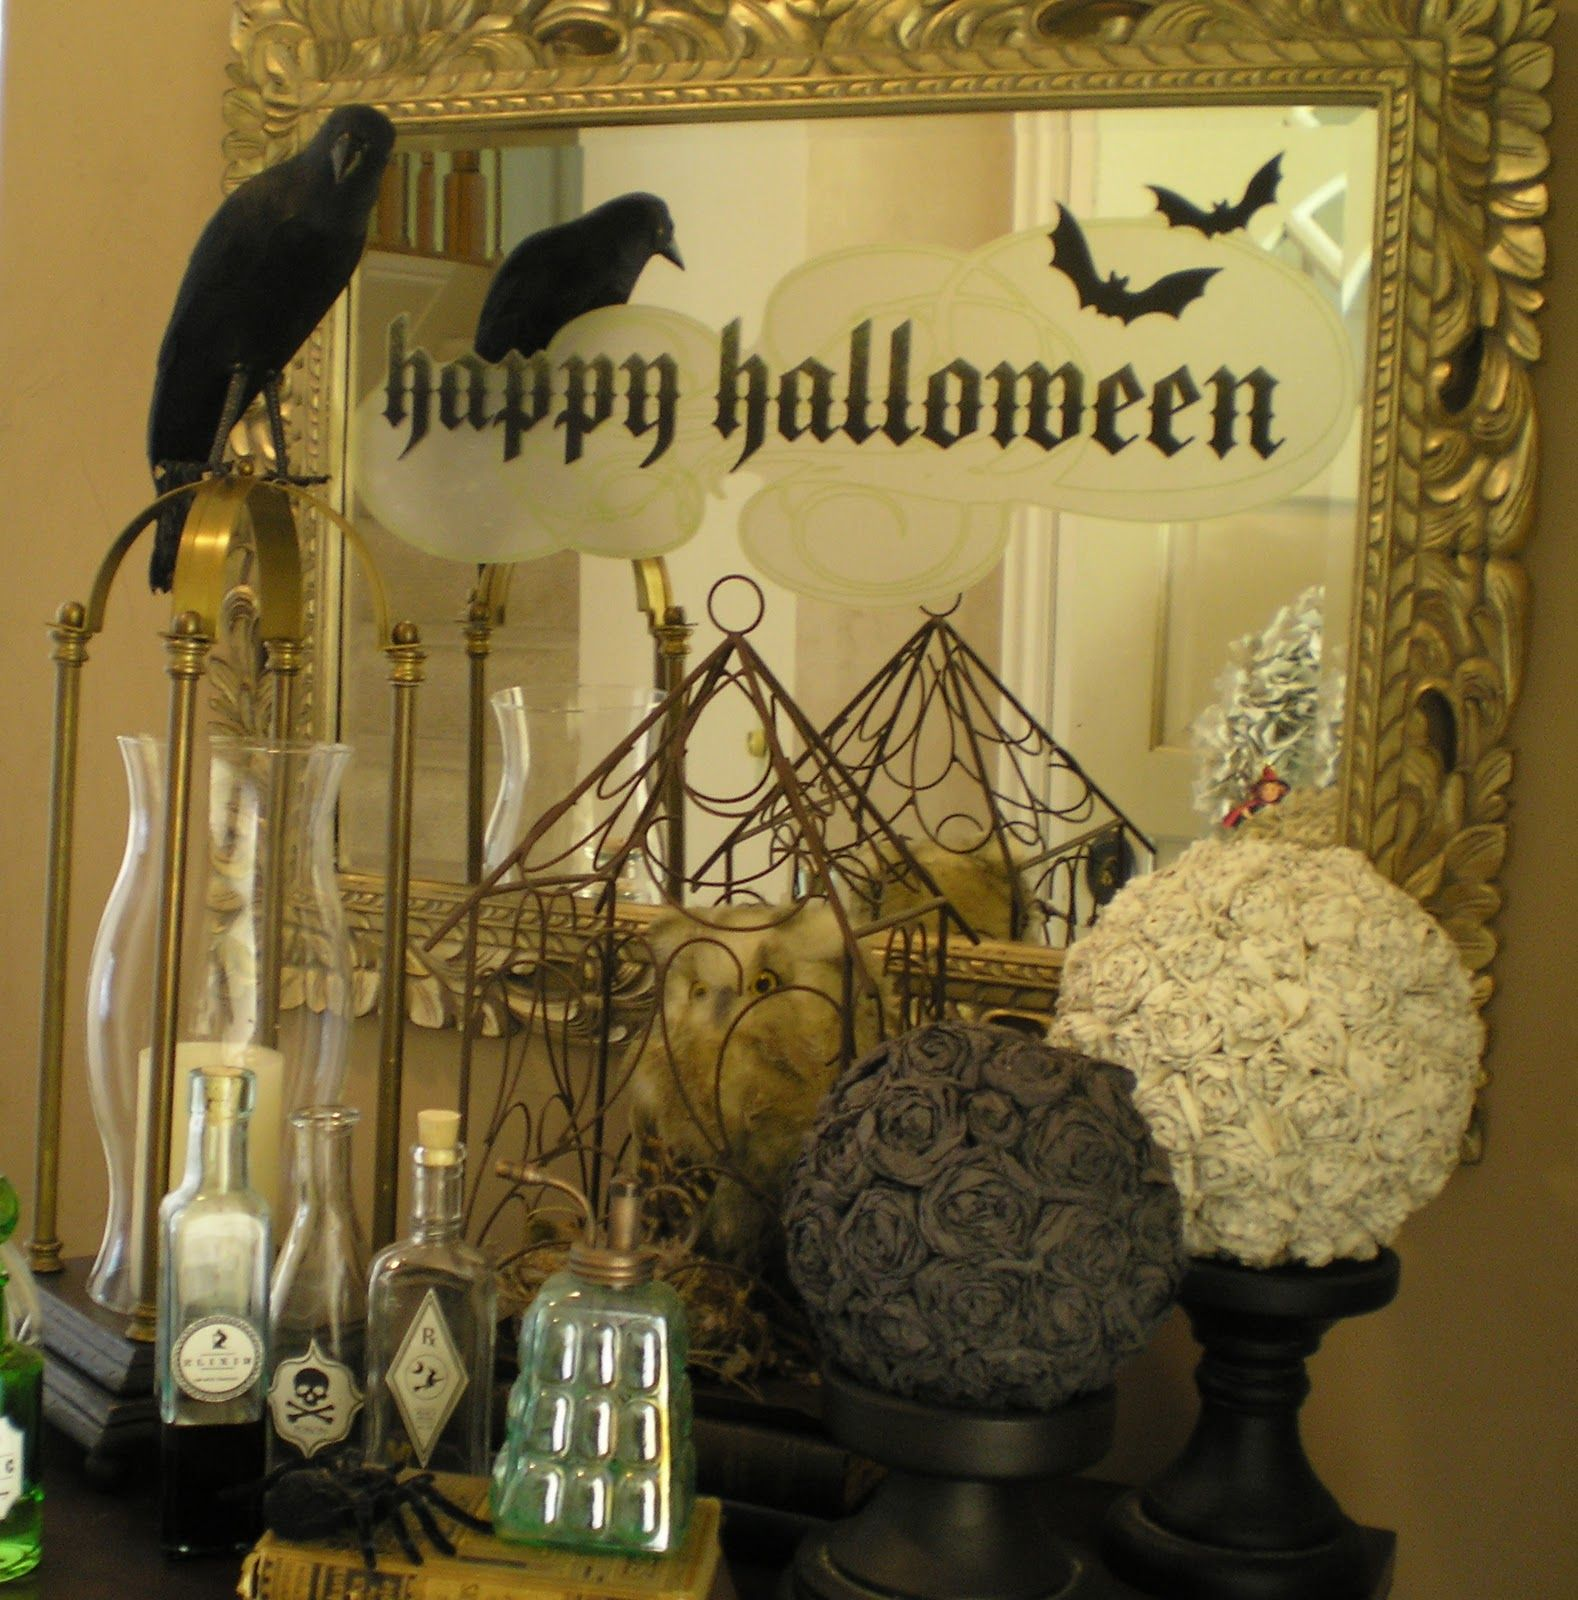 decoration ideas vintage gold halloween mirror with white owl and raven black indoor house decoration interesting spooky indoor halloween decoration ideas - Halloween Clearance Decorations